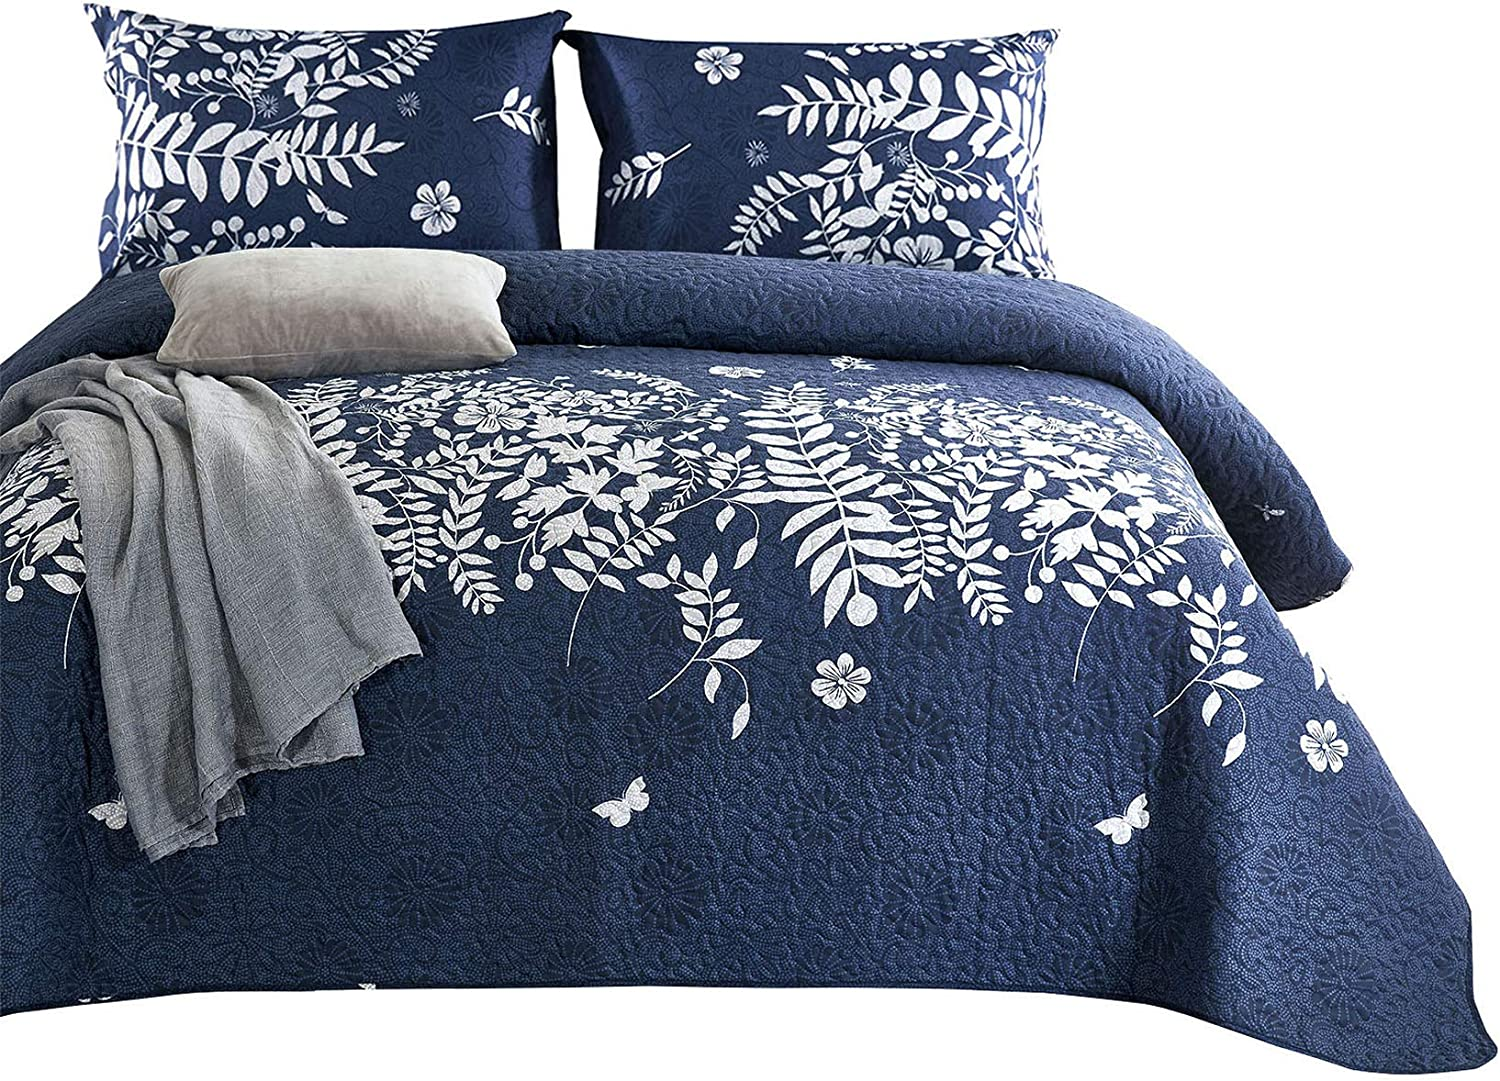 Wake In Cloud - Navy Blue Quilt Set, Gray Grey Floral Flowers Tree Leaves Modern Pattern Printed, Soft Microfiber Bedspread Coverlet Bedding